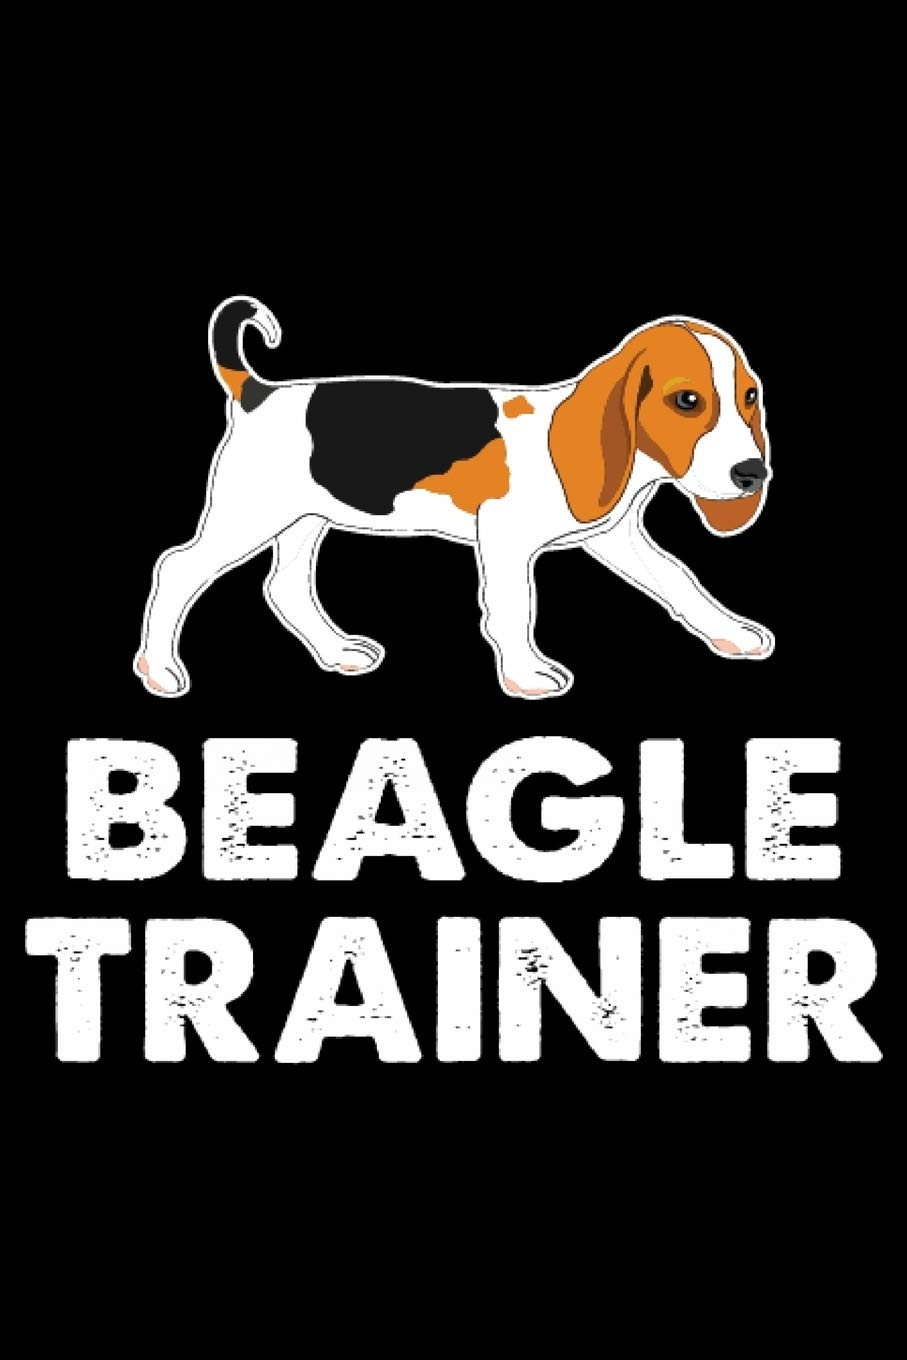 Beagle Trainer: Beagle Training Log Book gifts. Best Dog Training Log Book gifts For Dog Lovers who loves Beagle. Cute Beagle Training Log Book Gifts is the perfect gifts.